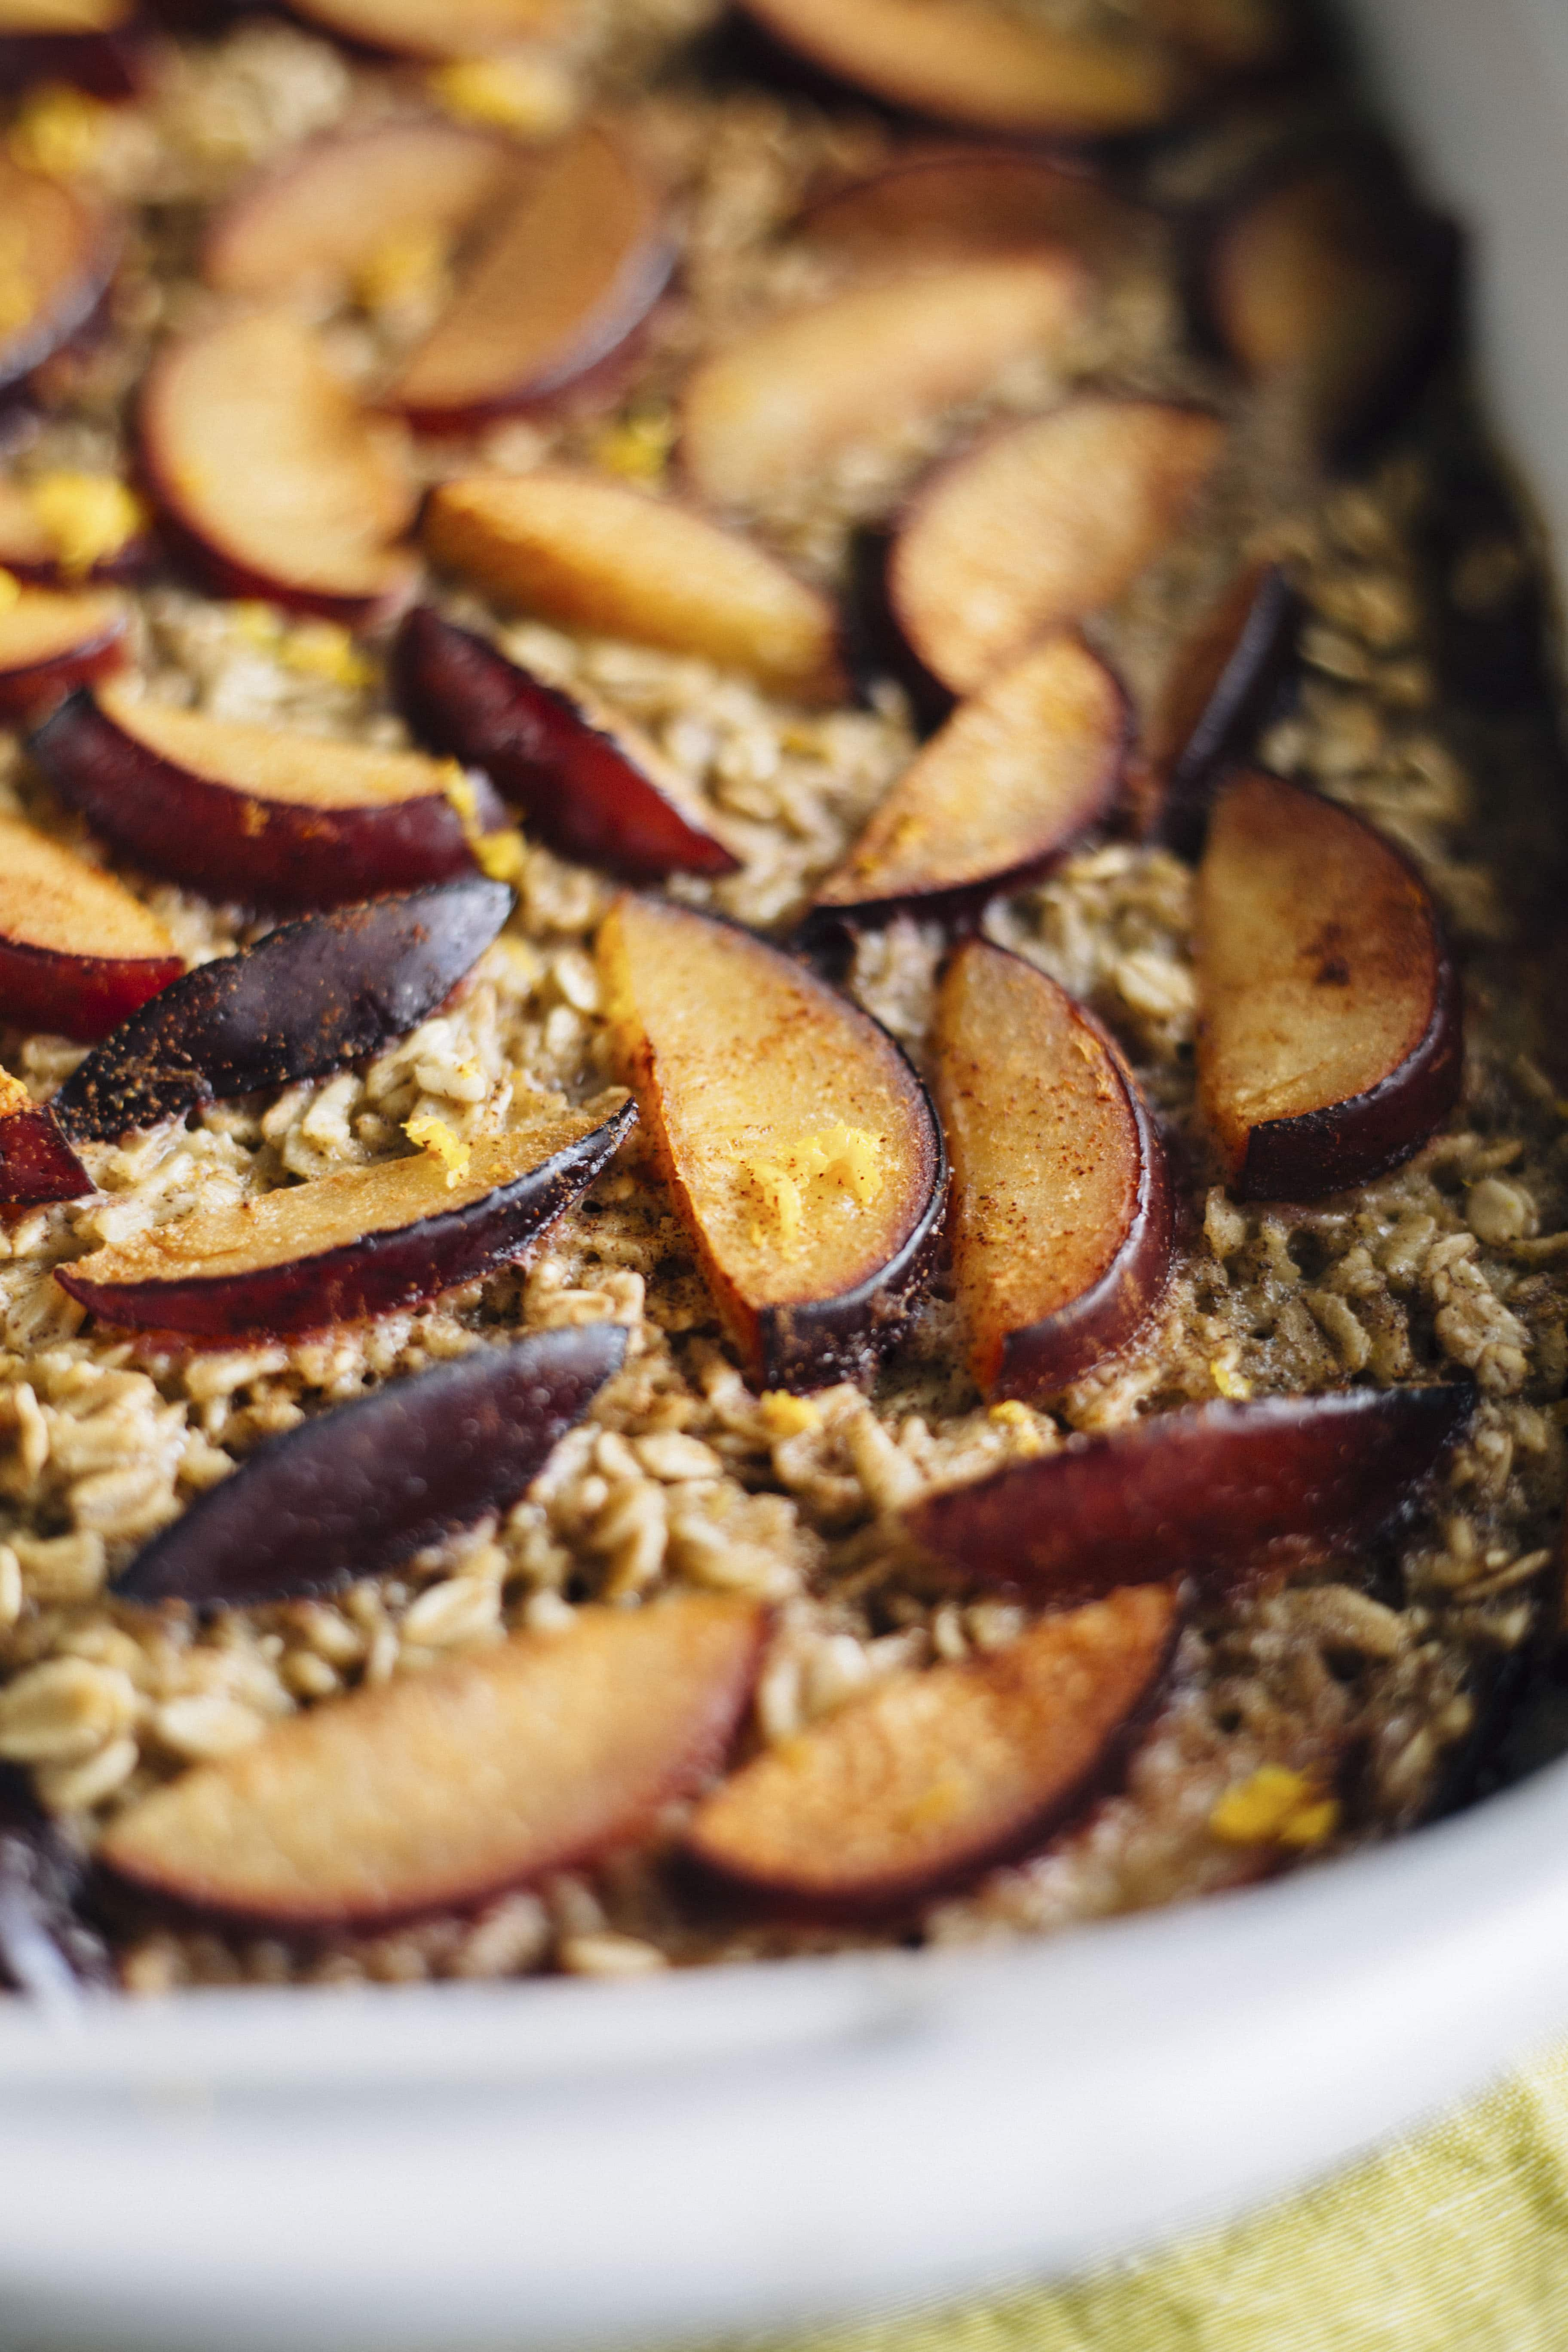 A delicious oatmeal bake filled with cinnamon, plums and orange zest!